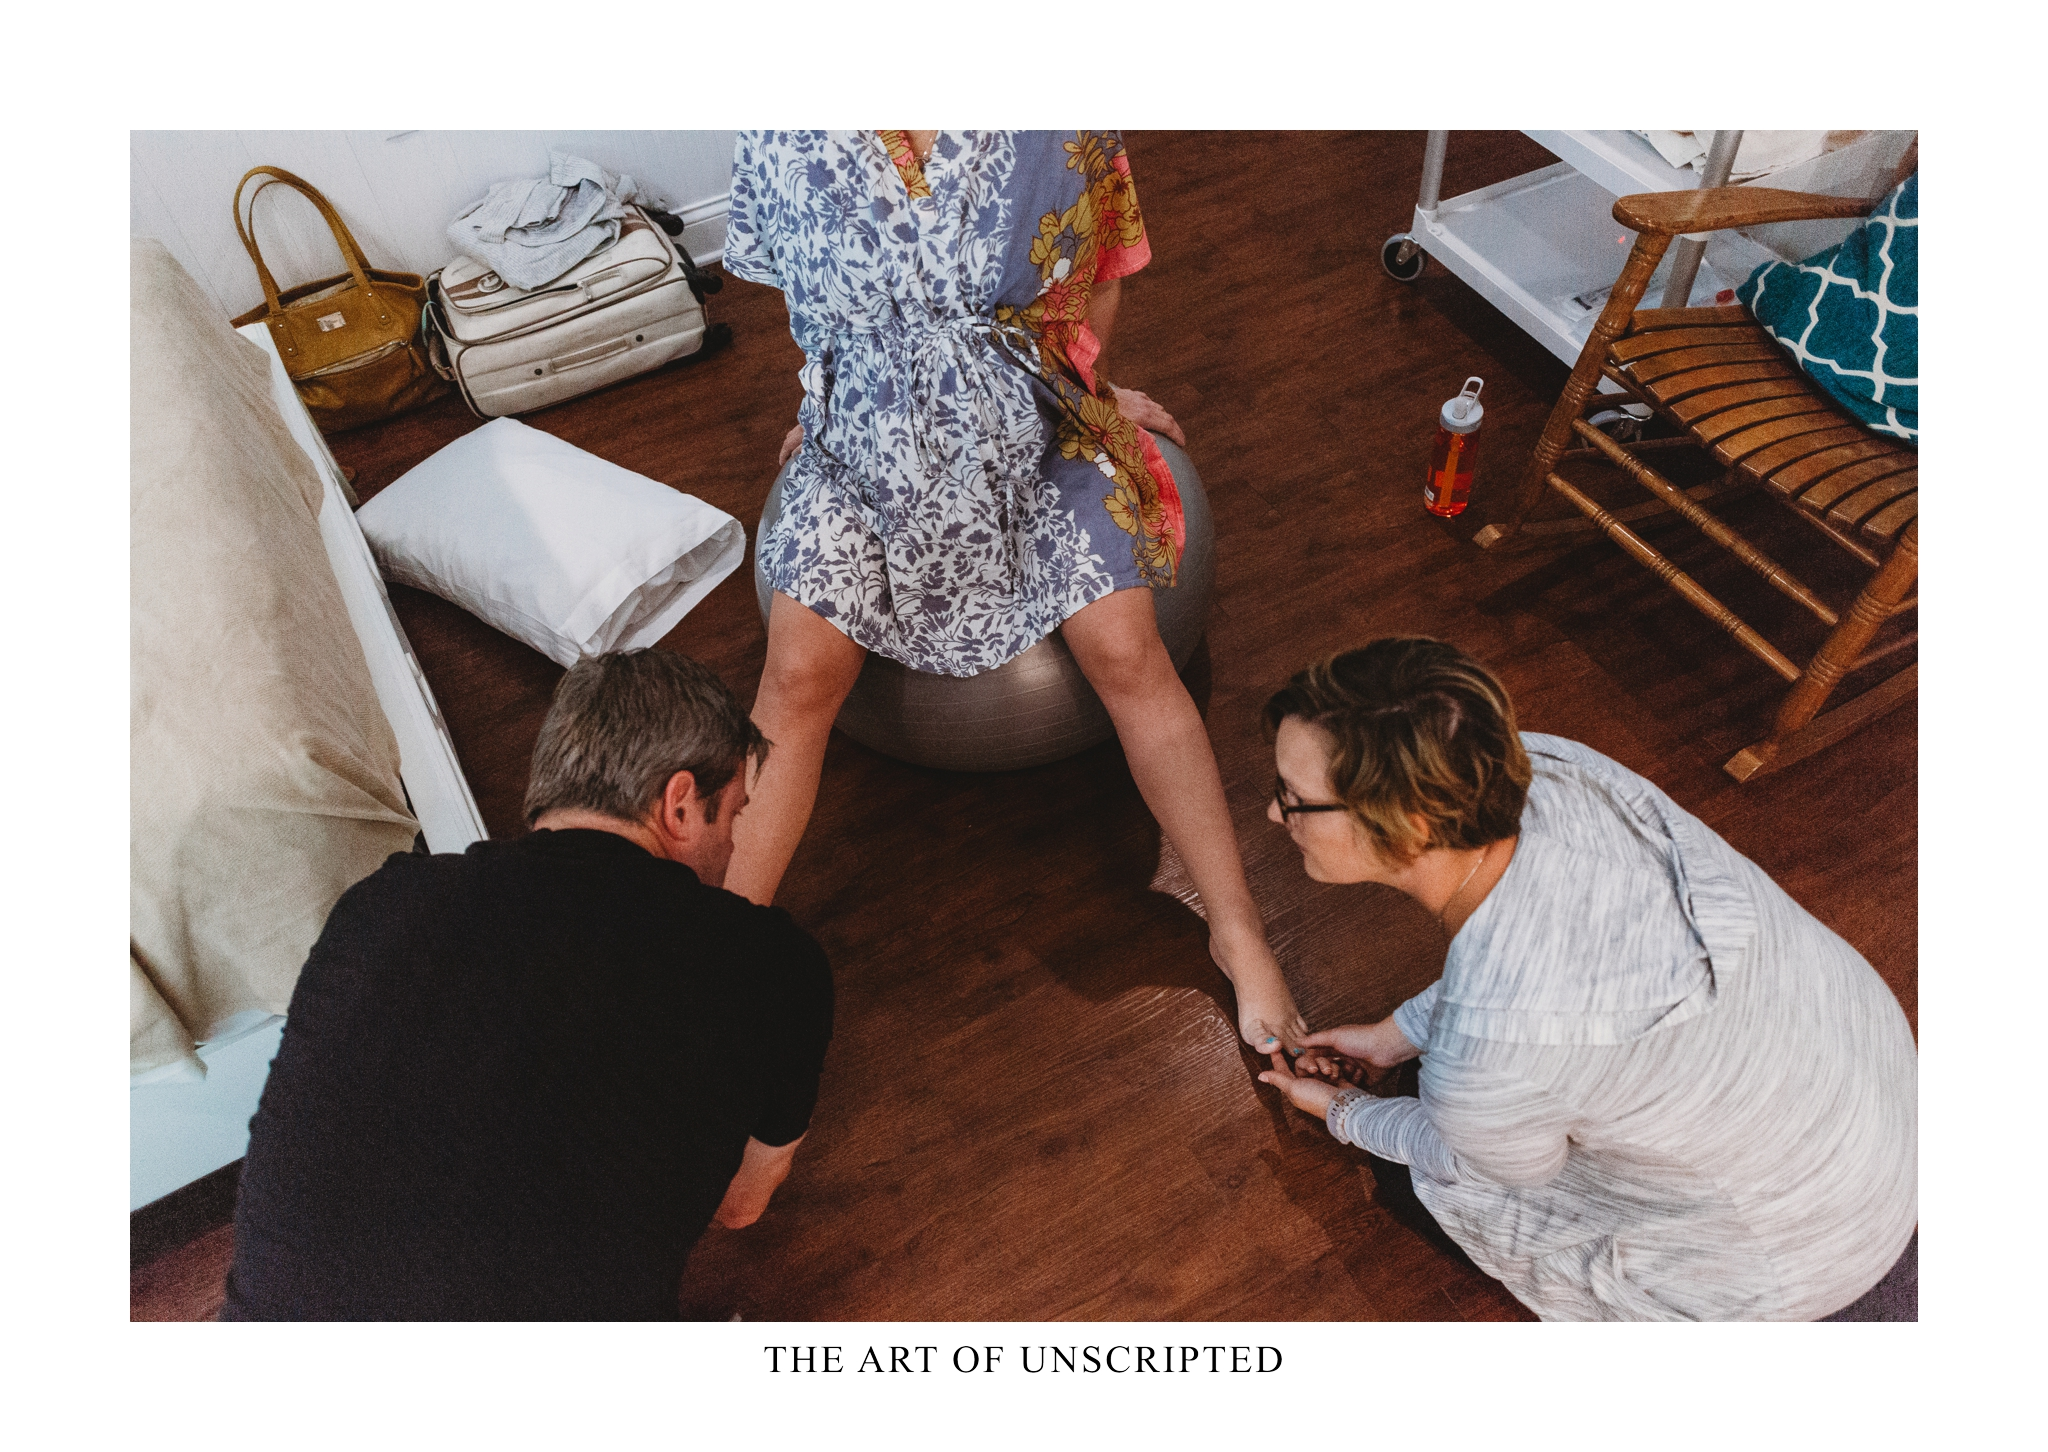 2017-06-10_055341__THE ART OF UNSCRIPTED_SPRINGFIELD MO_BIRTH PHOTOGRAPHER_ DOCUMENTARY_STORYTELLING_417_PHOTOGRAPHER